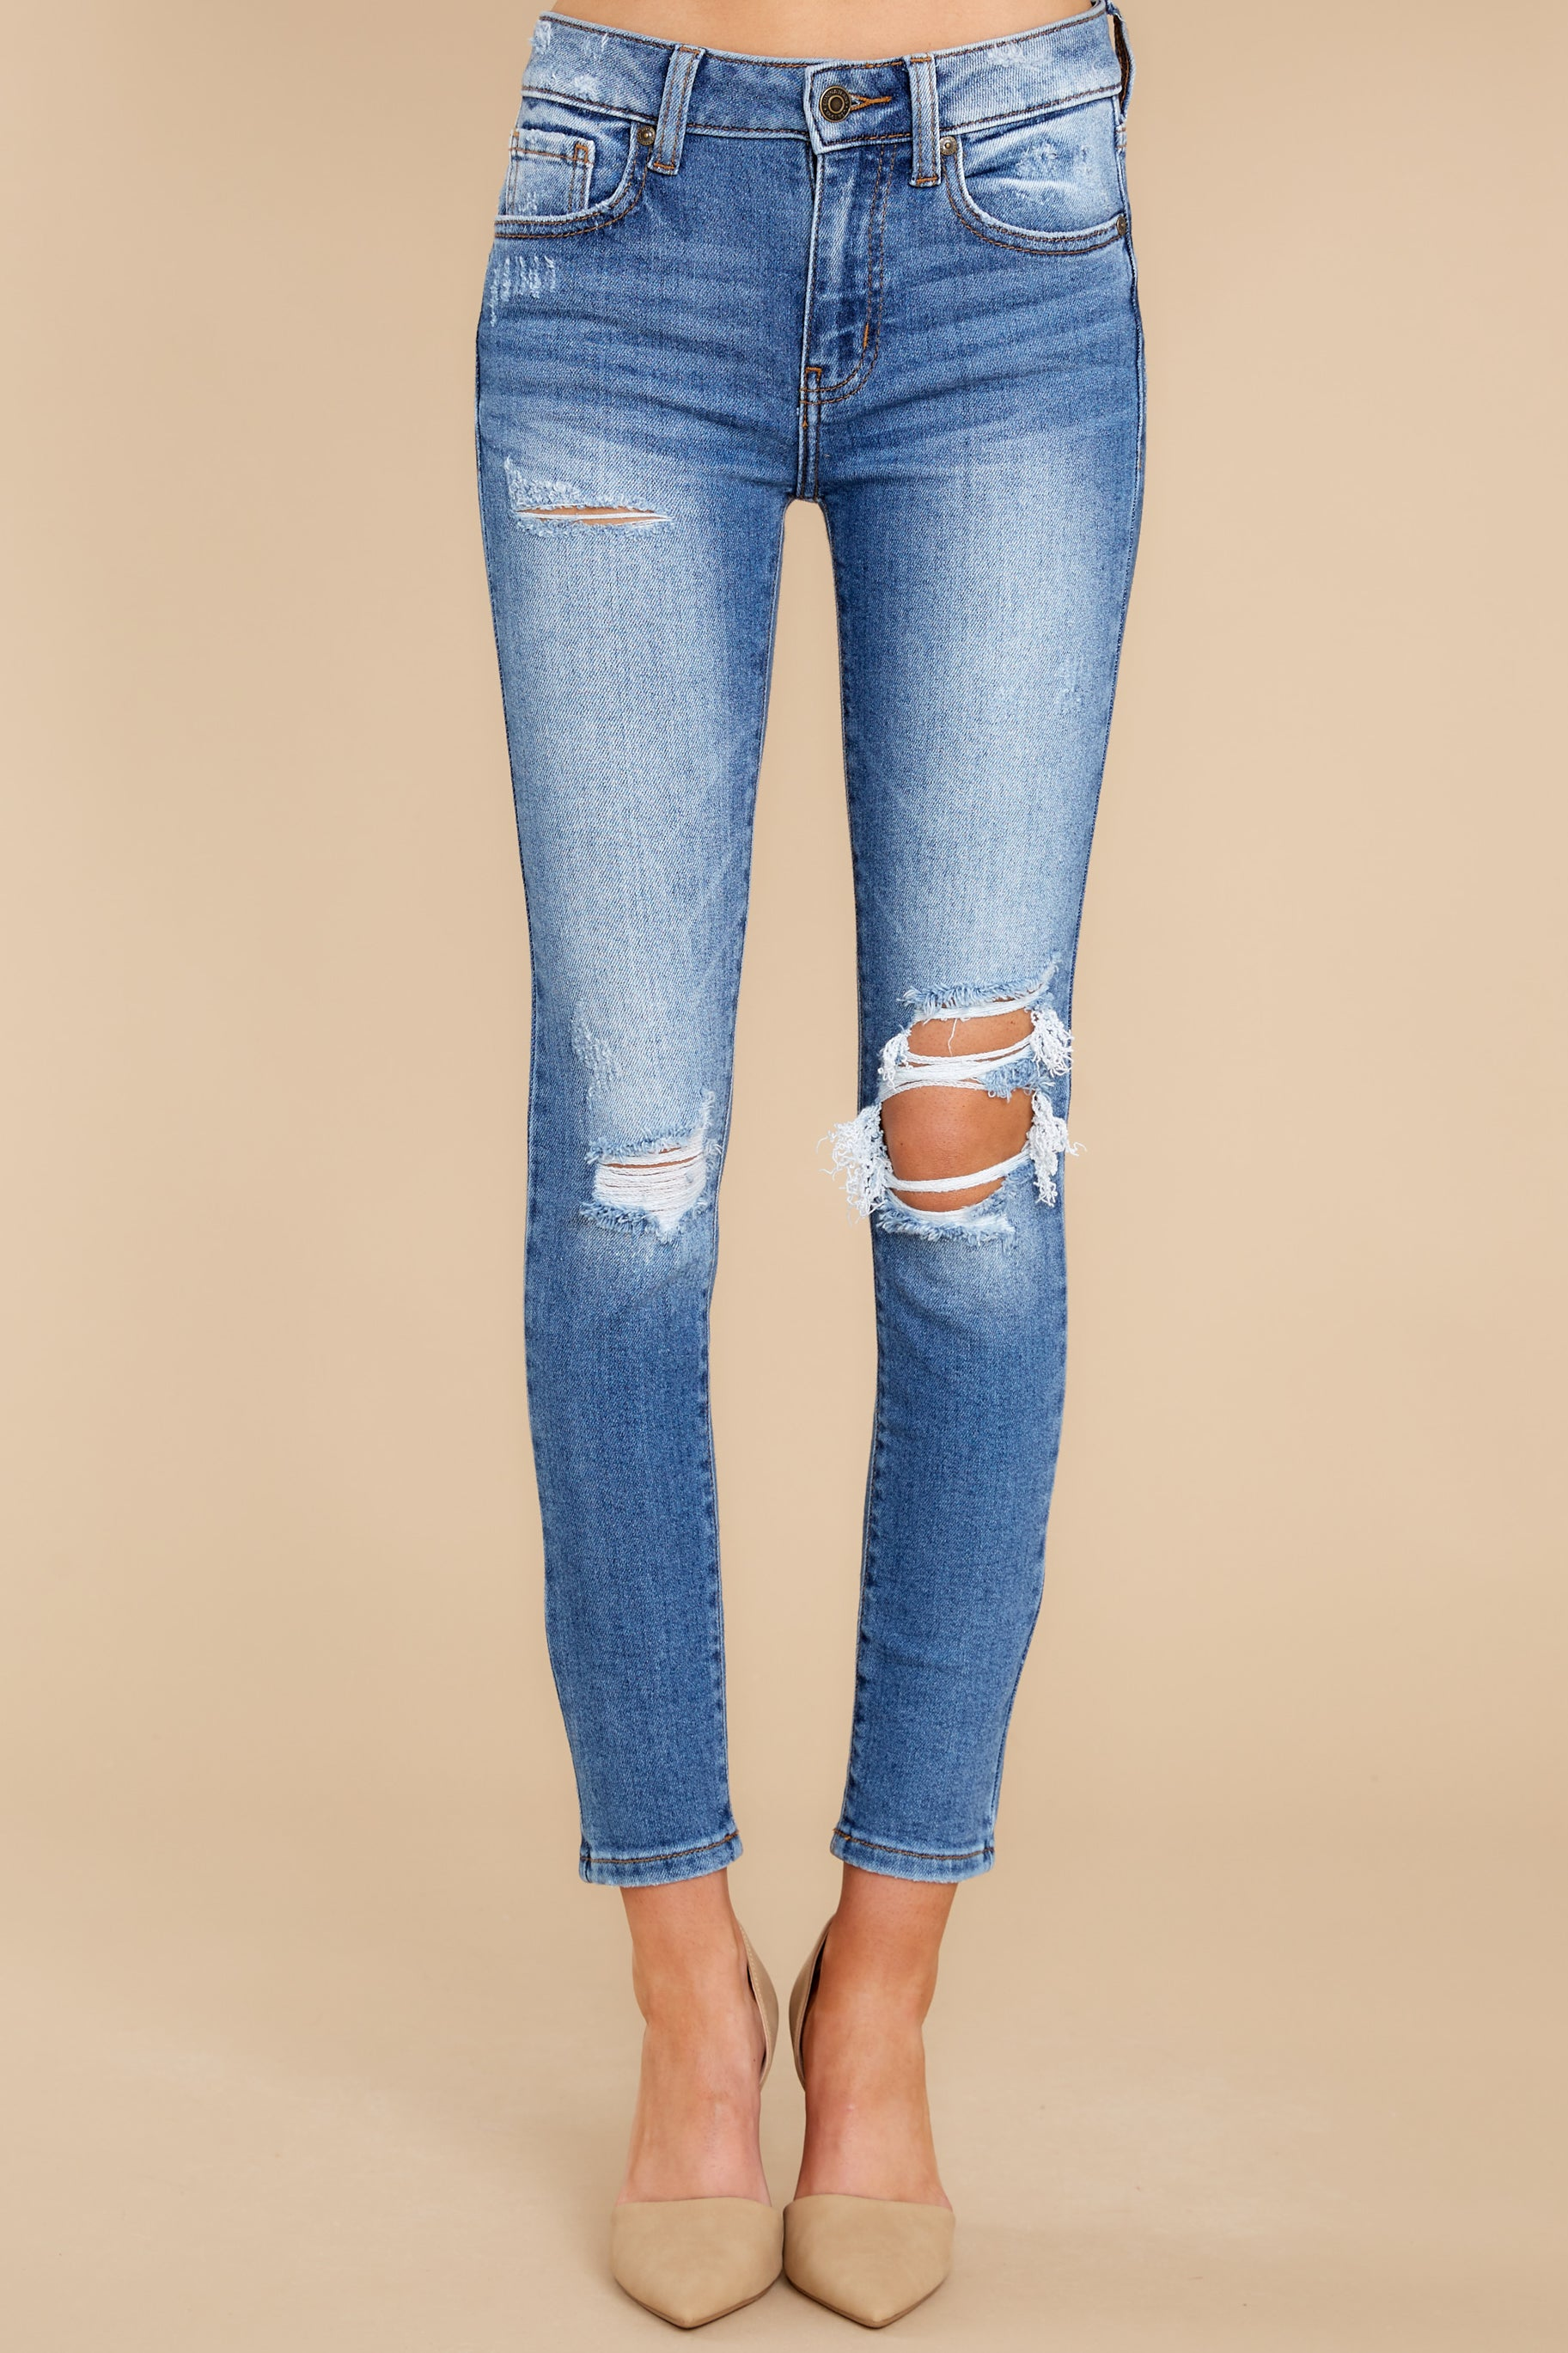 2 In Action Medium Wash Distressed Skinny Jeans at reddress.com